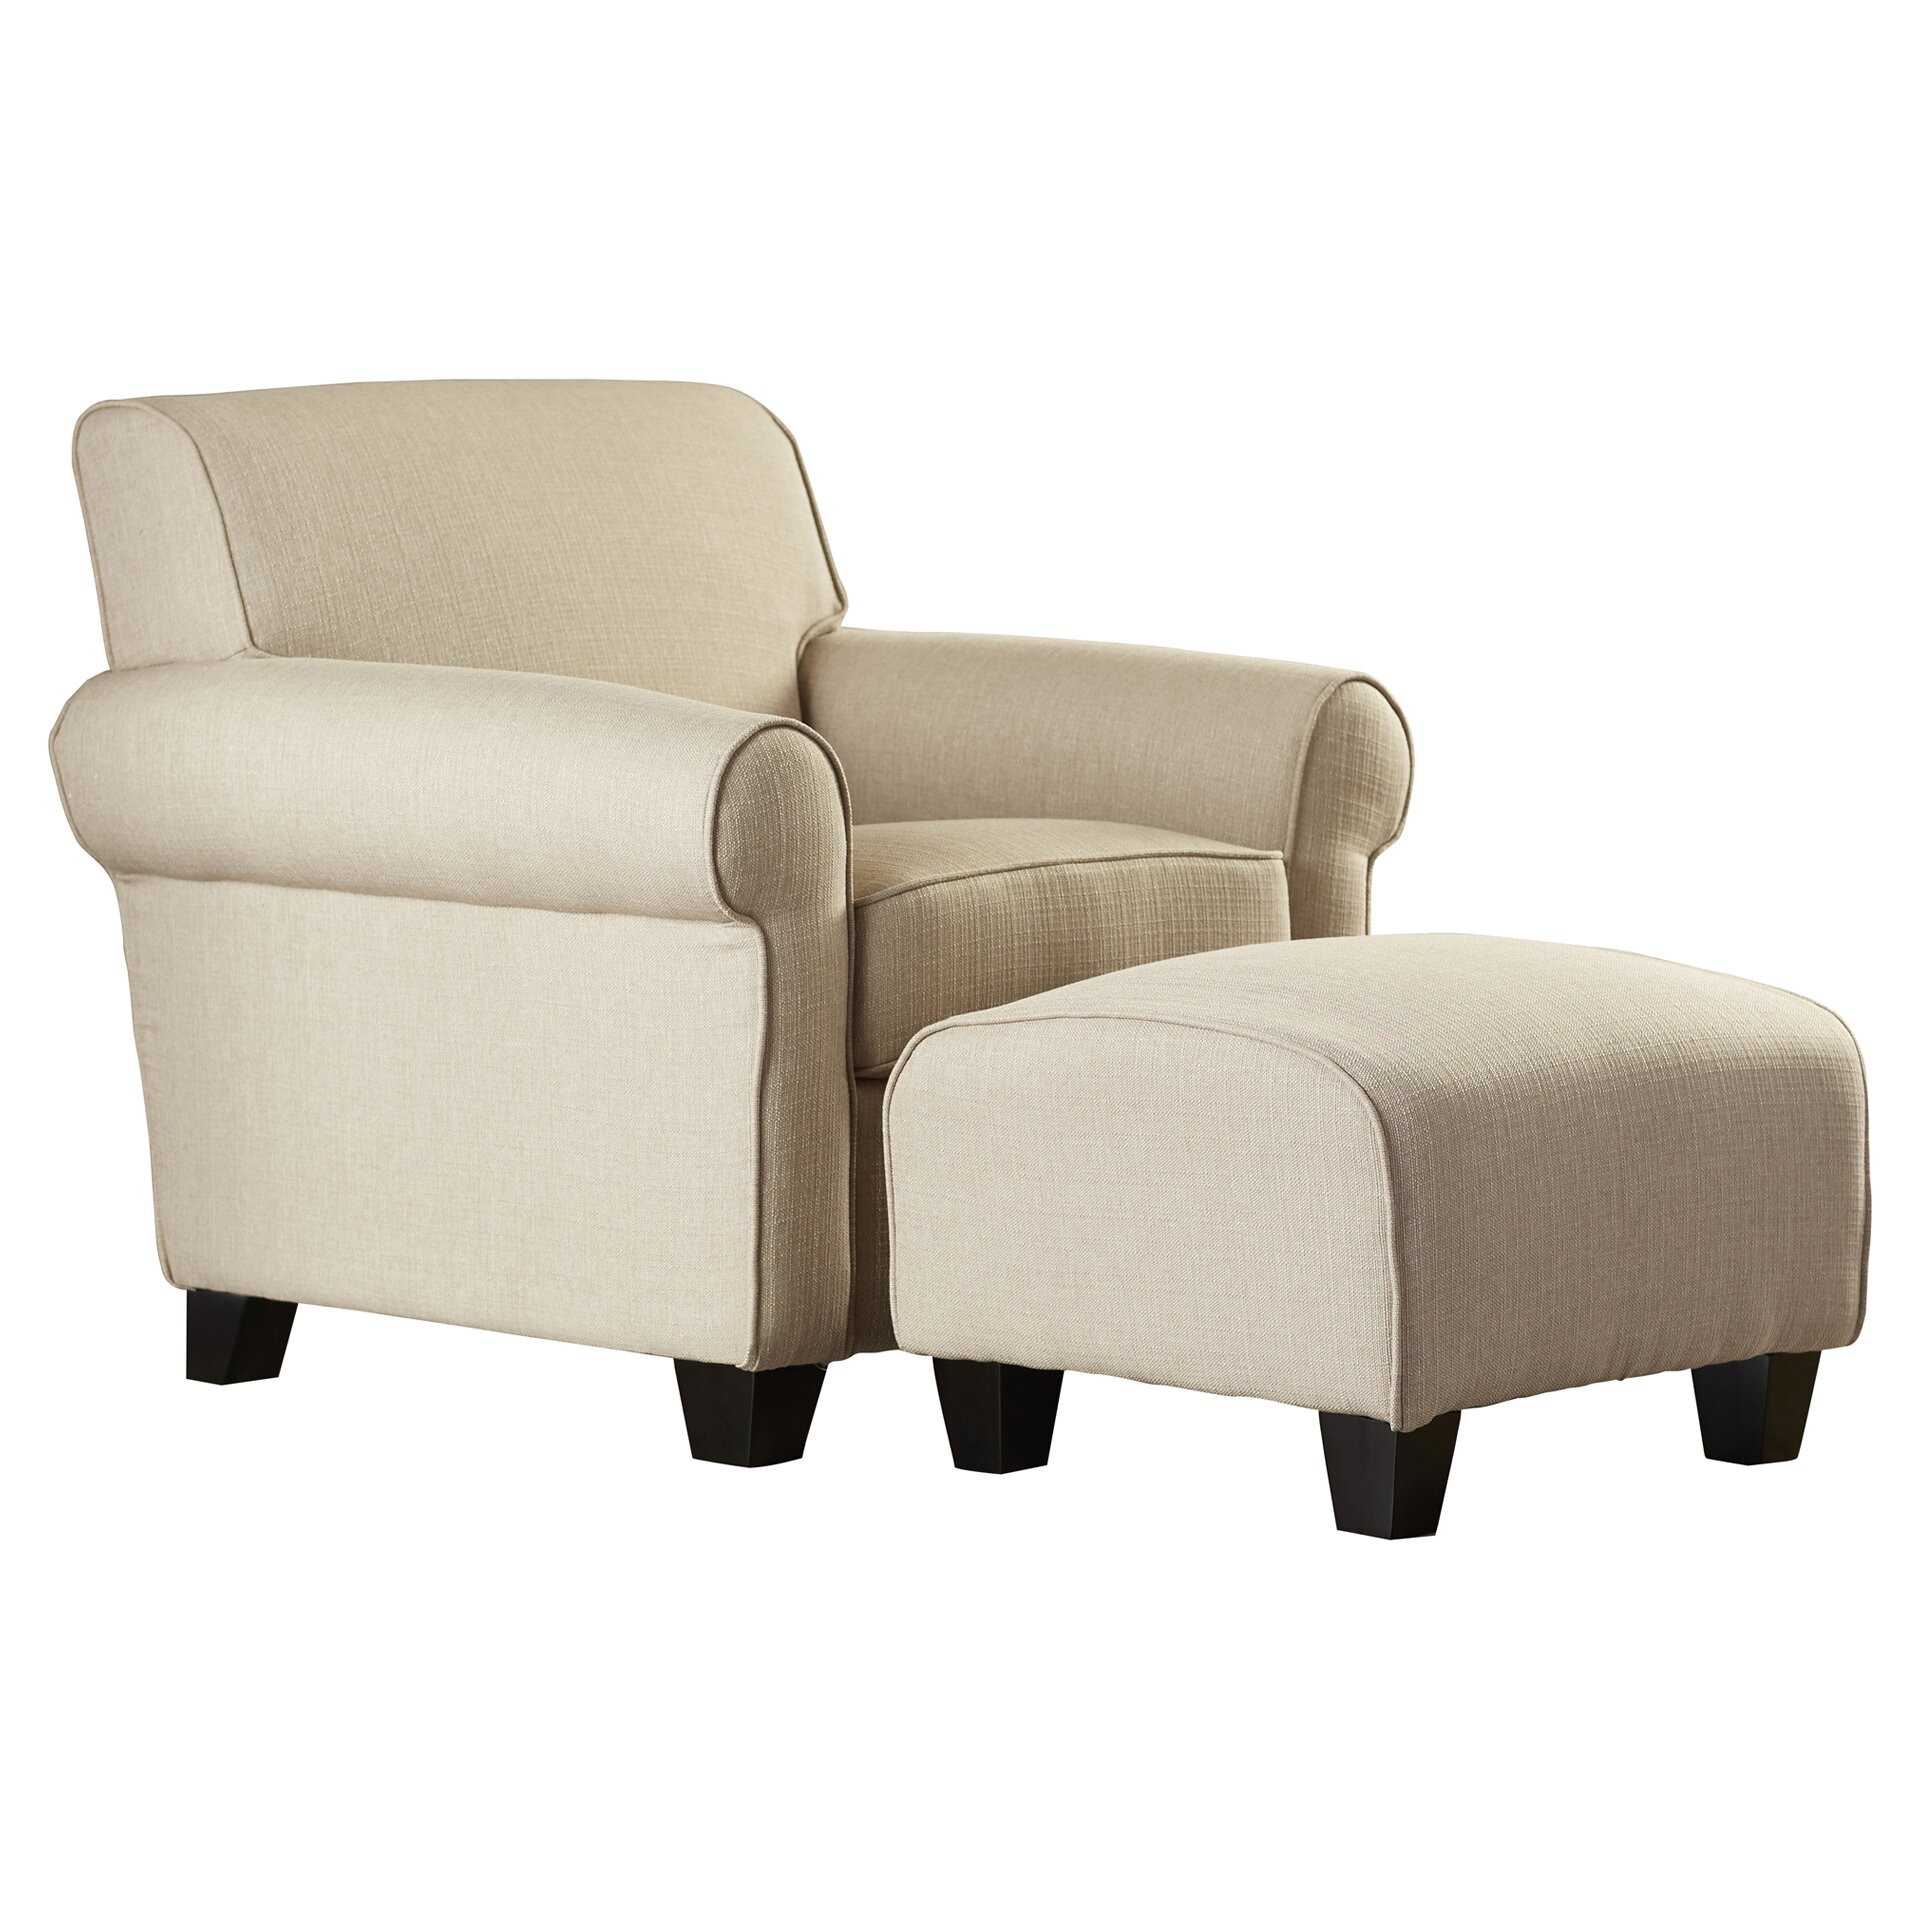 # Cantor Armchair and Ottoman Set By Bernhardt.